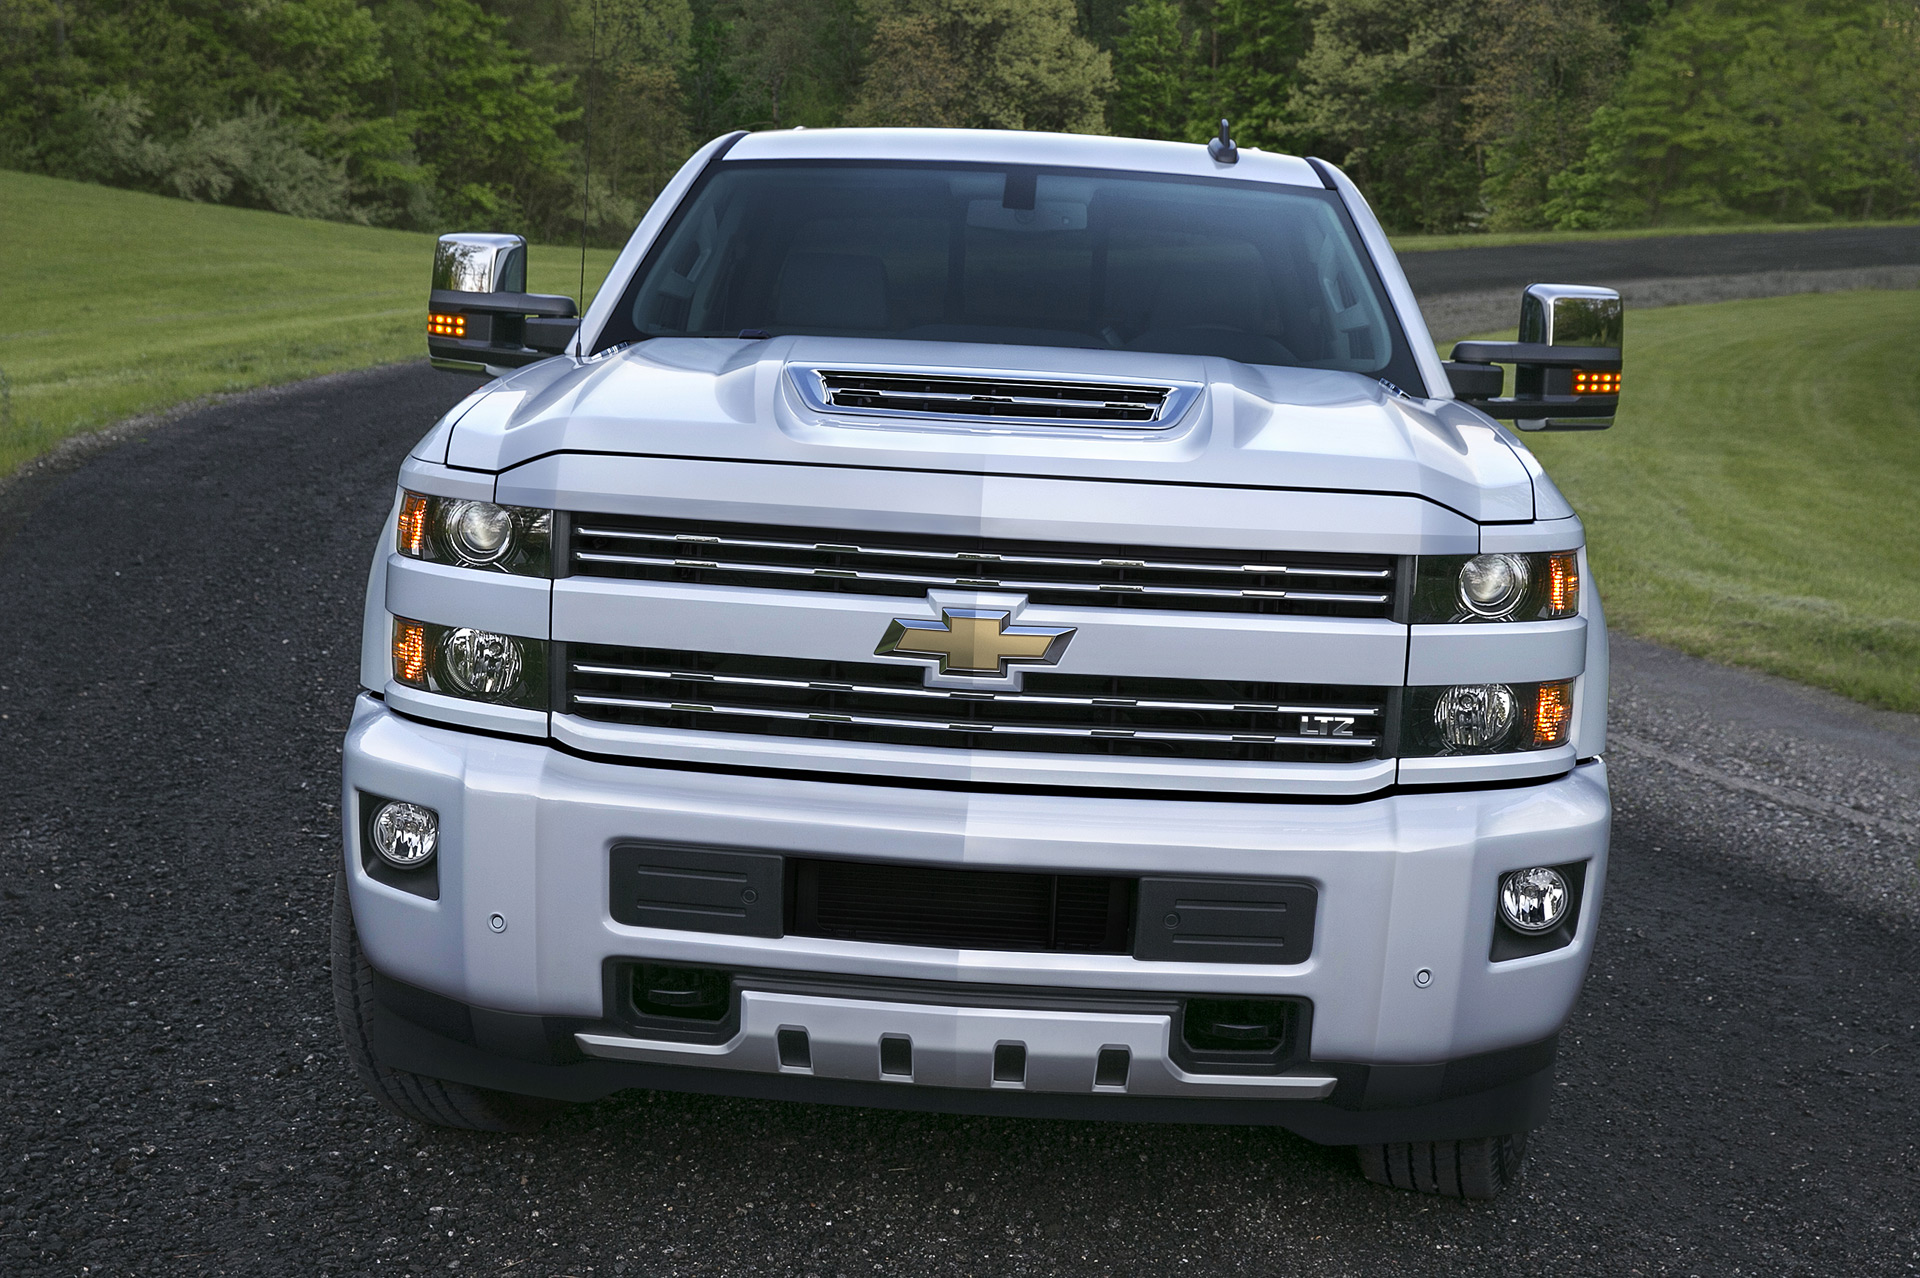 2017 Chevrolet Silverado 2500hd Gets New Hood Scoop To Feed Its Diesel Tesla Engine Diagram